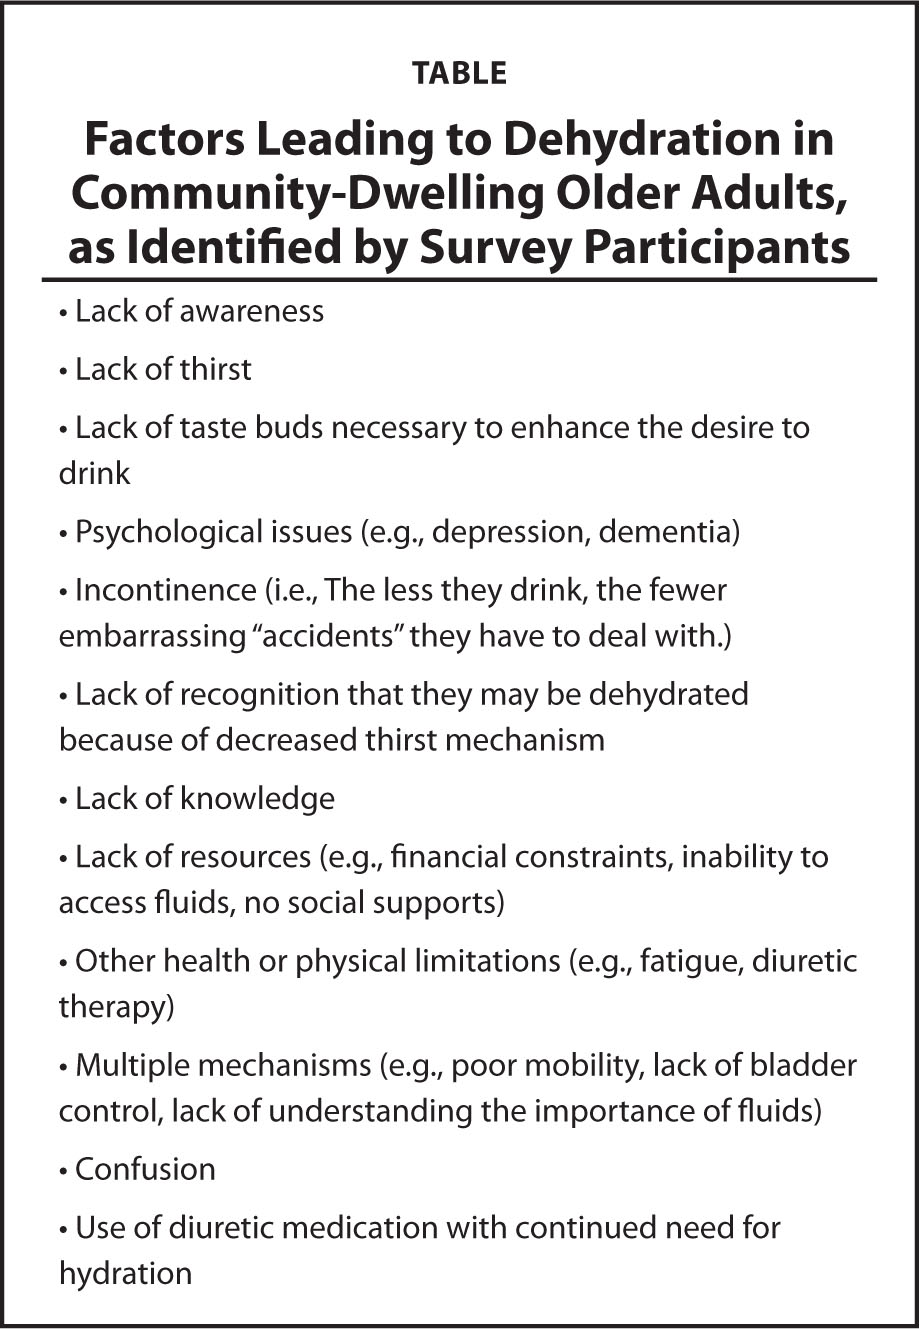 Factors Leading to Dehydration in Community-Dwelling Older Adults, as Identified by Survey Participants